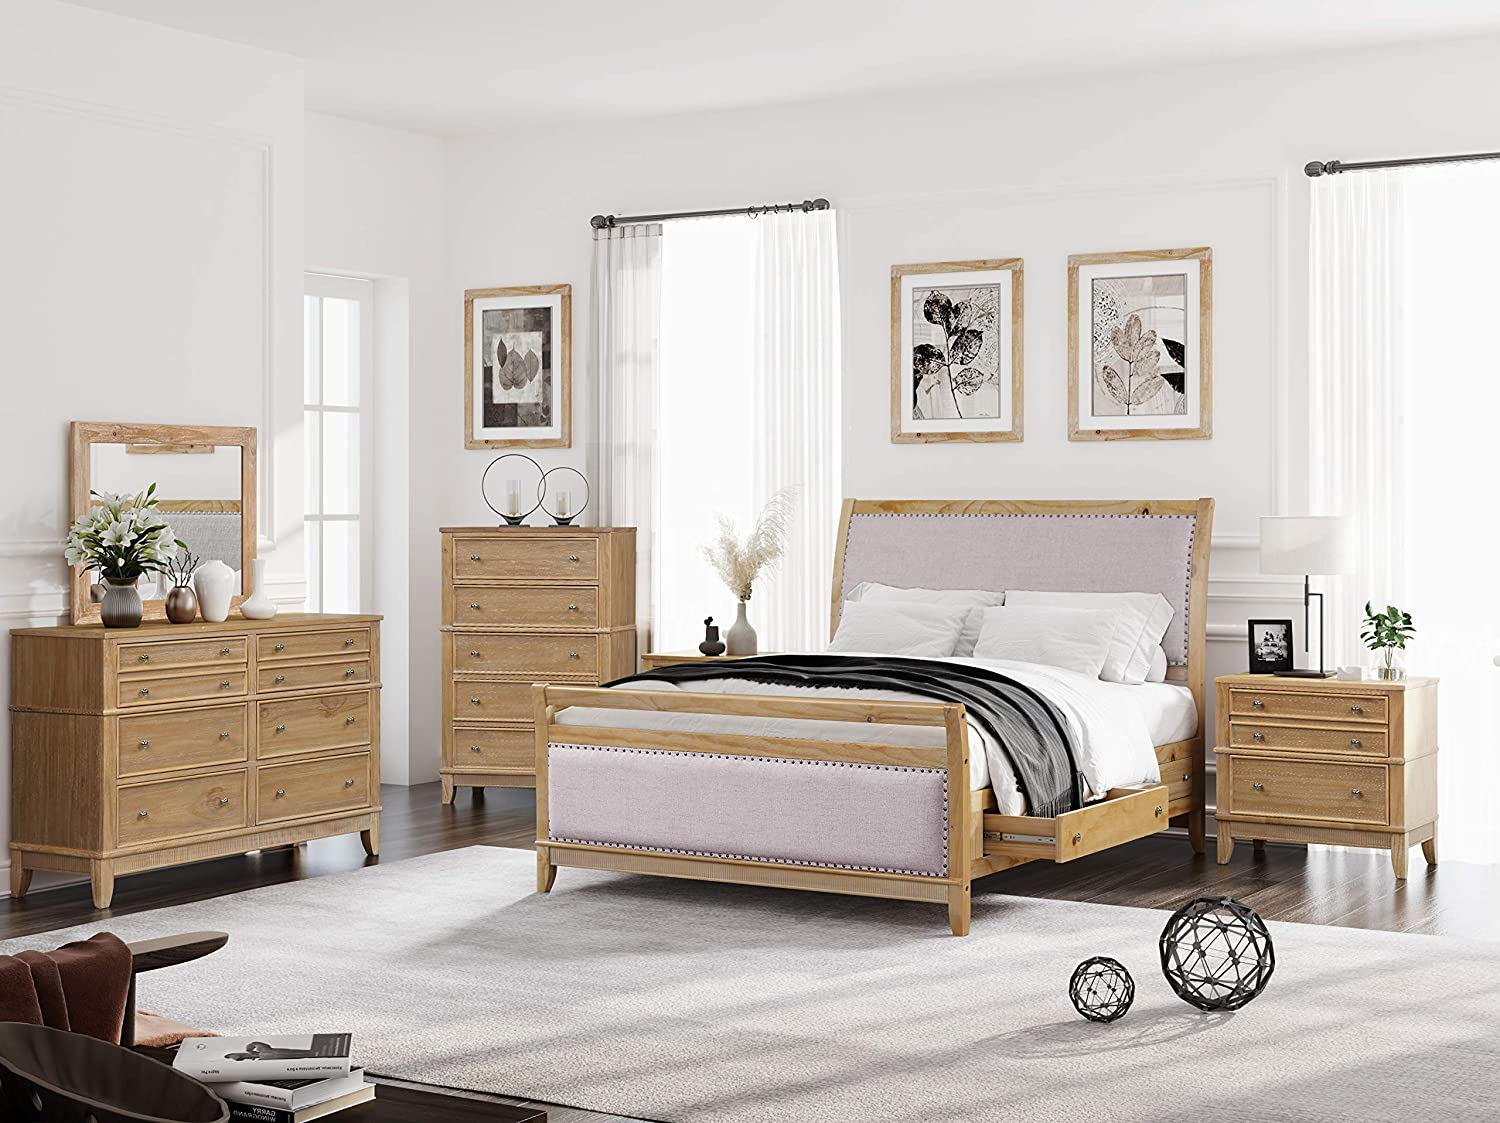 SOFTSEA 6-Piece Furniture Set for Bedroom, Modern Bedroom Sets with Solid Wood Bed Frame, 2 Nightstands, 6-Drawer Double Dresser, 6-Drawer Chest and Mirror, King Size